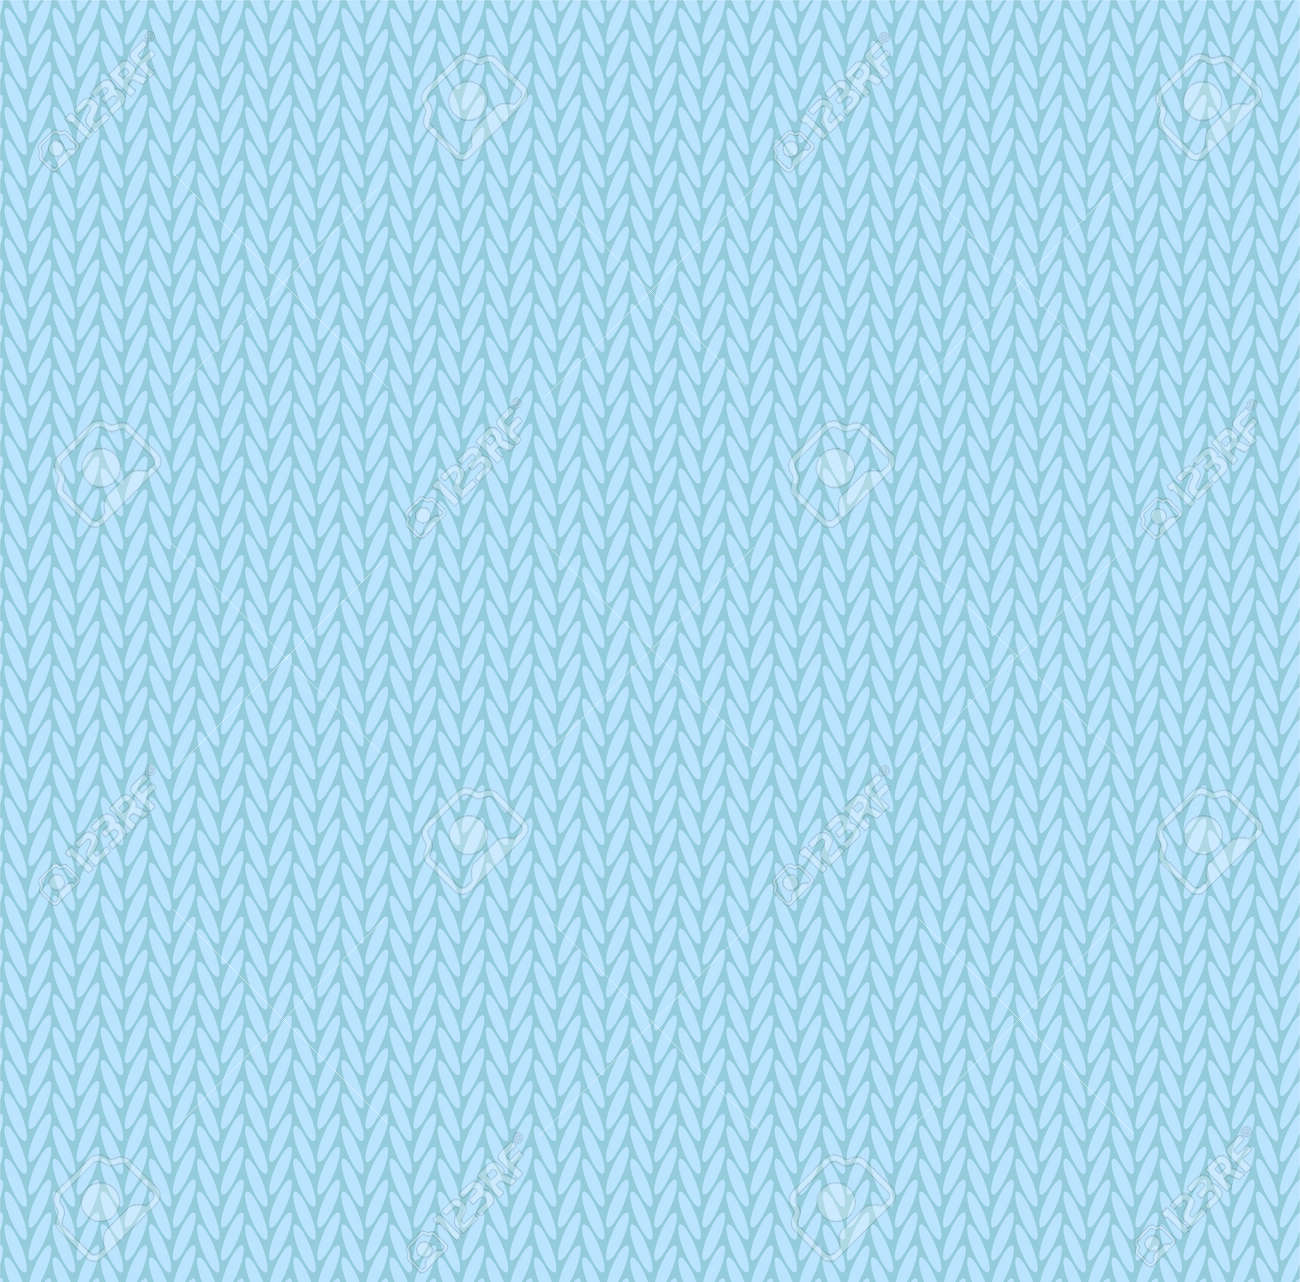 Knit texture sky blue color. Vector seamless pattern fabric. Knitting background flat design. - 155150714